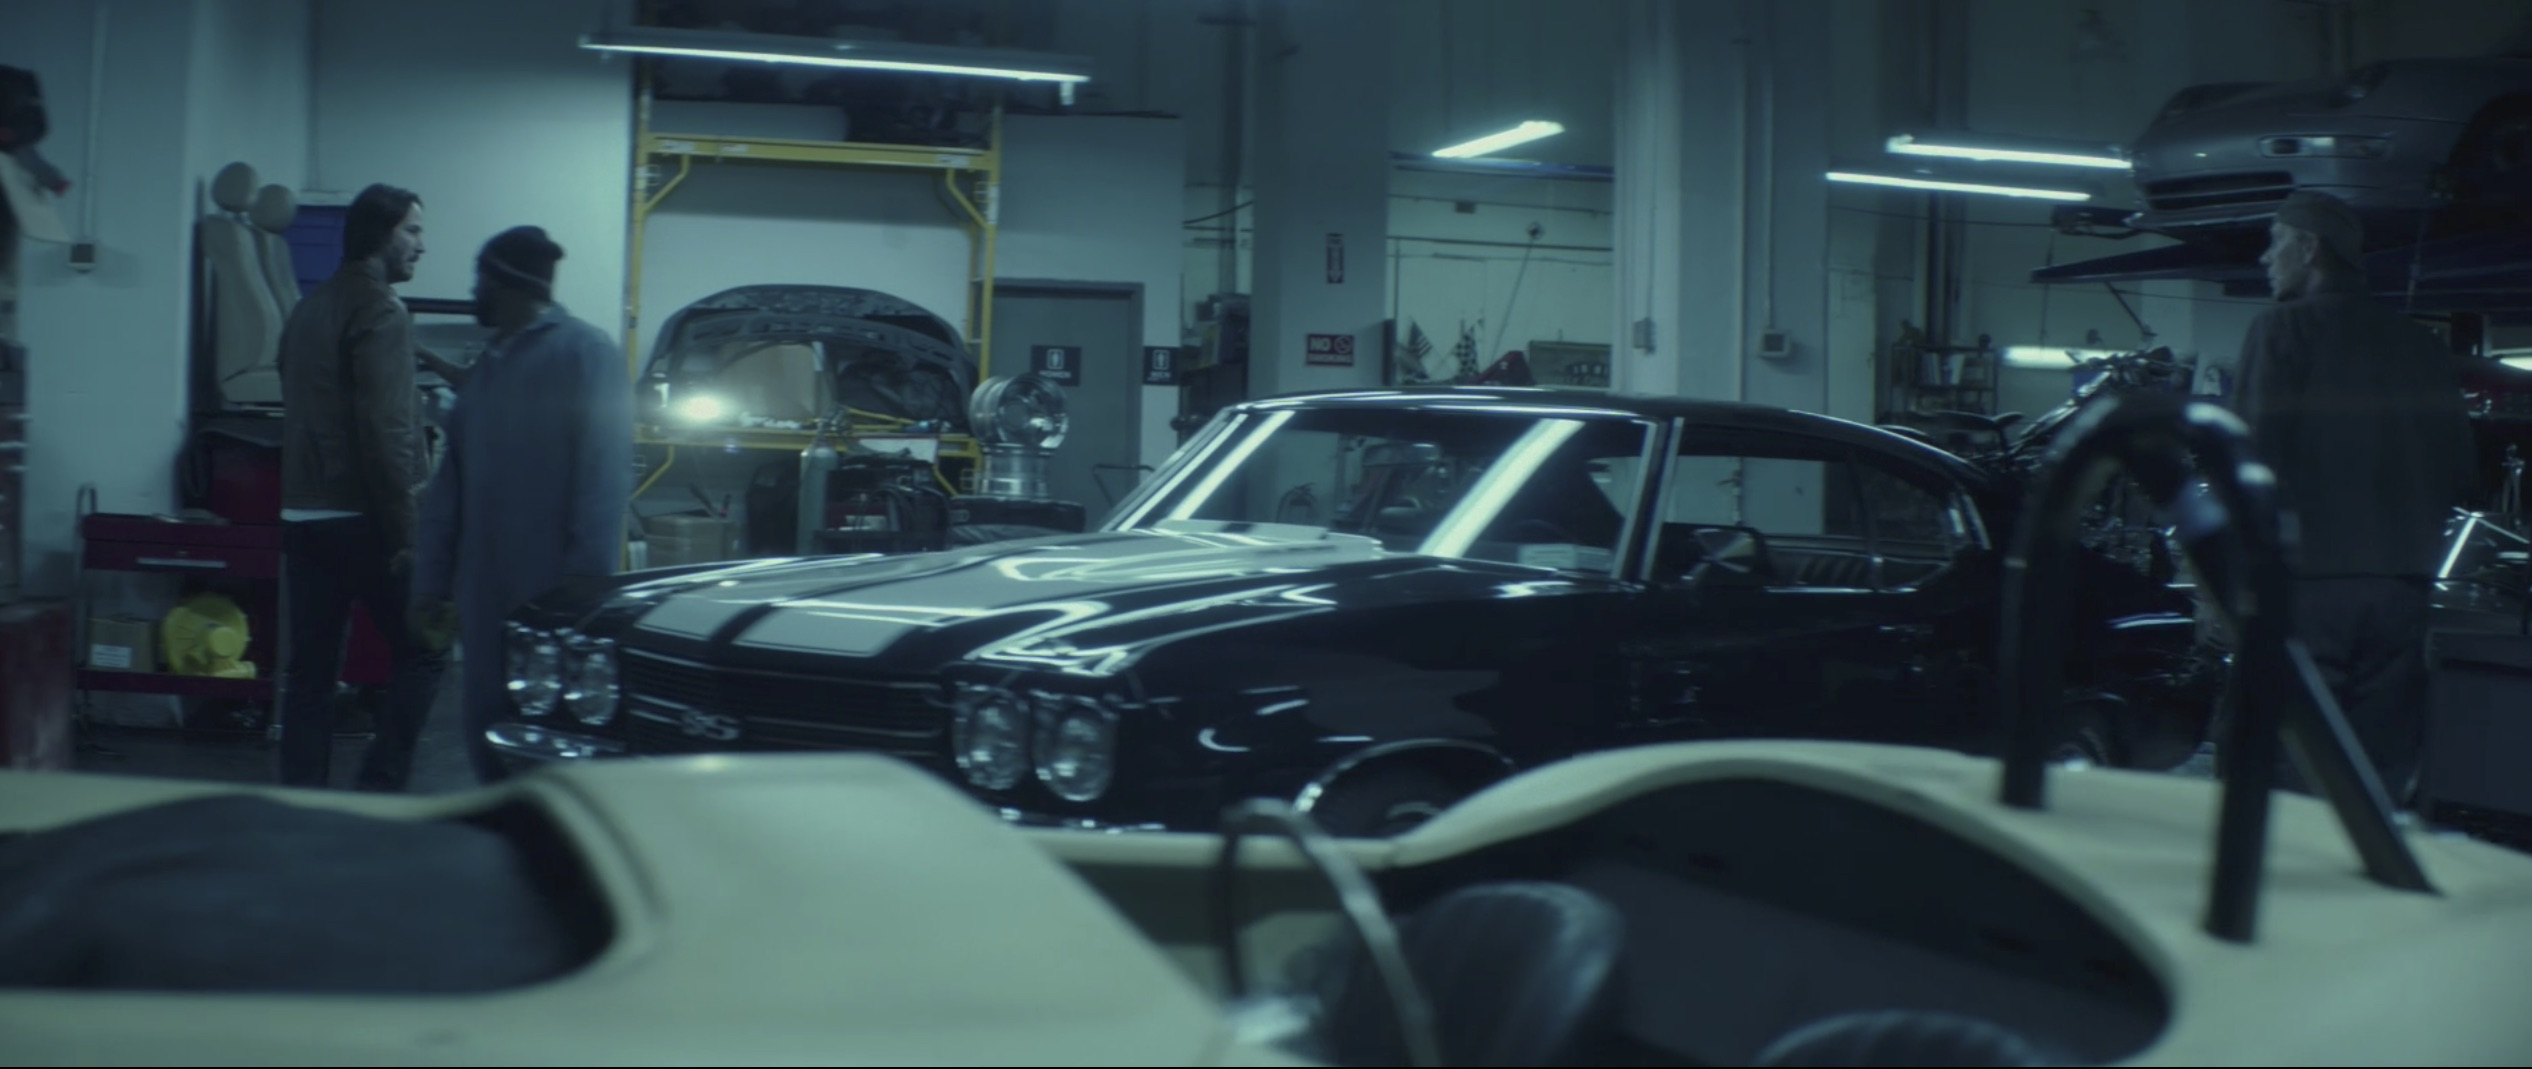 Chevelle in the shop